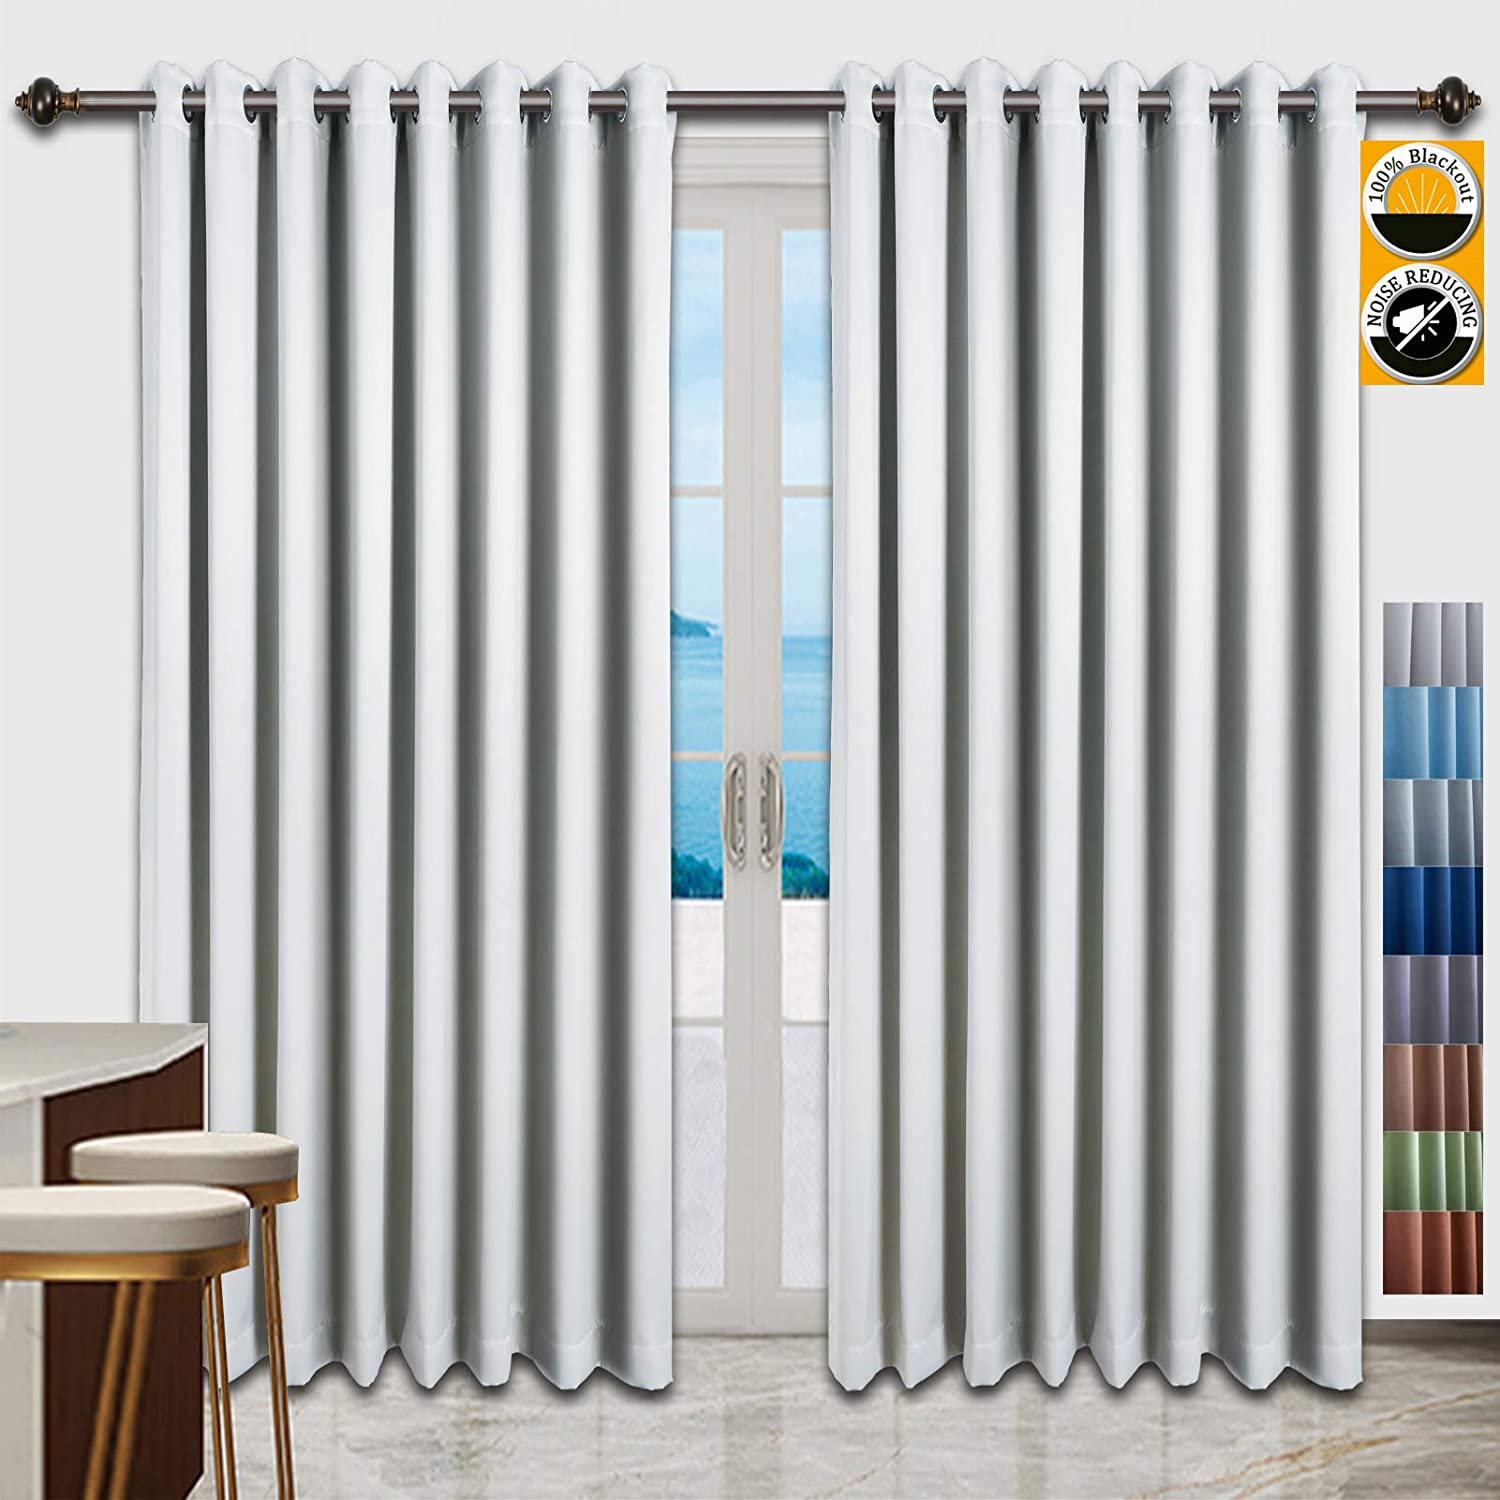 100% Blackout 大特価!! Curtains for Bedroom Living 40%OFFの激安セール Room Cu Doors Terrace